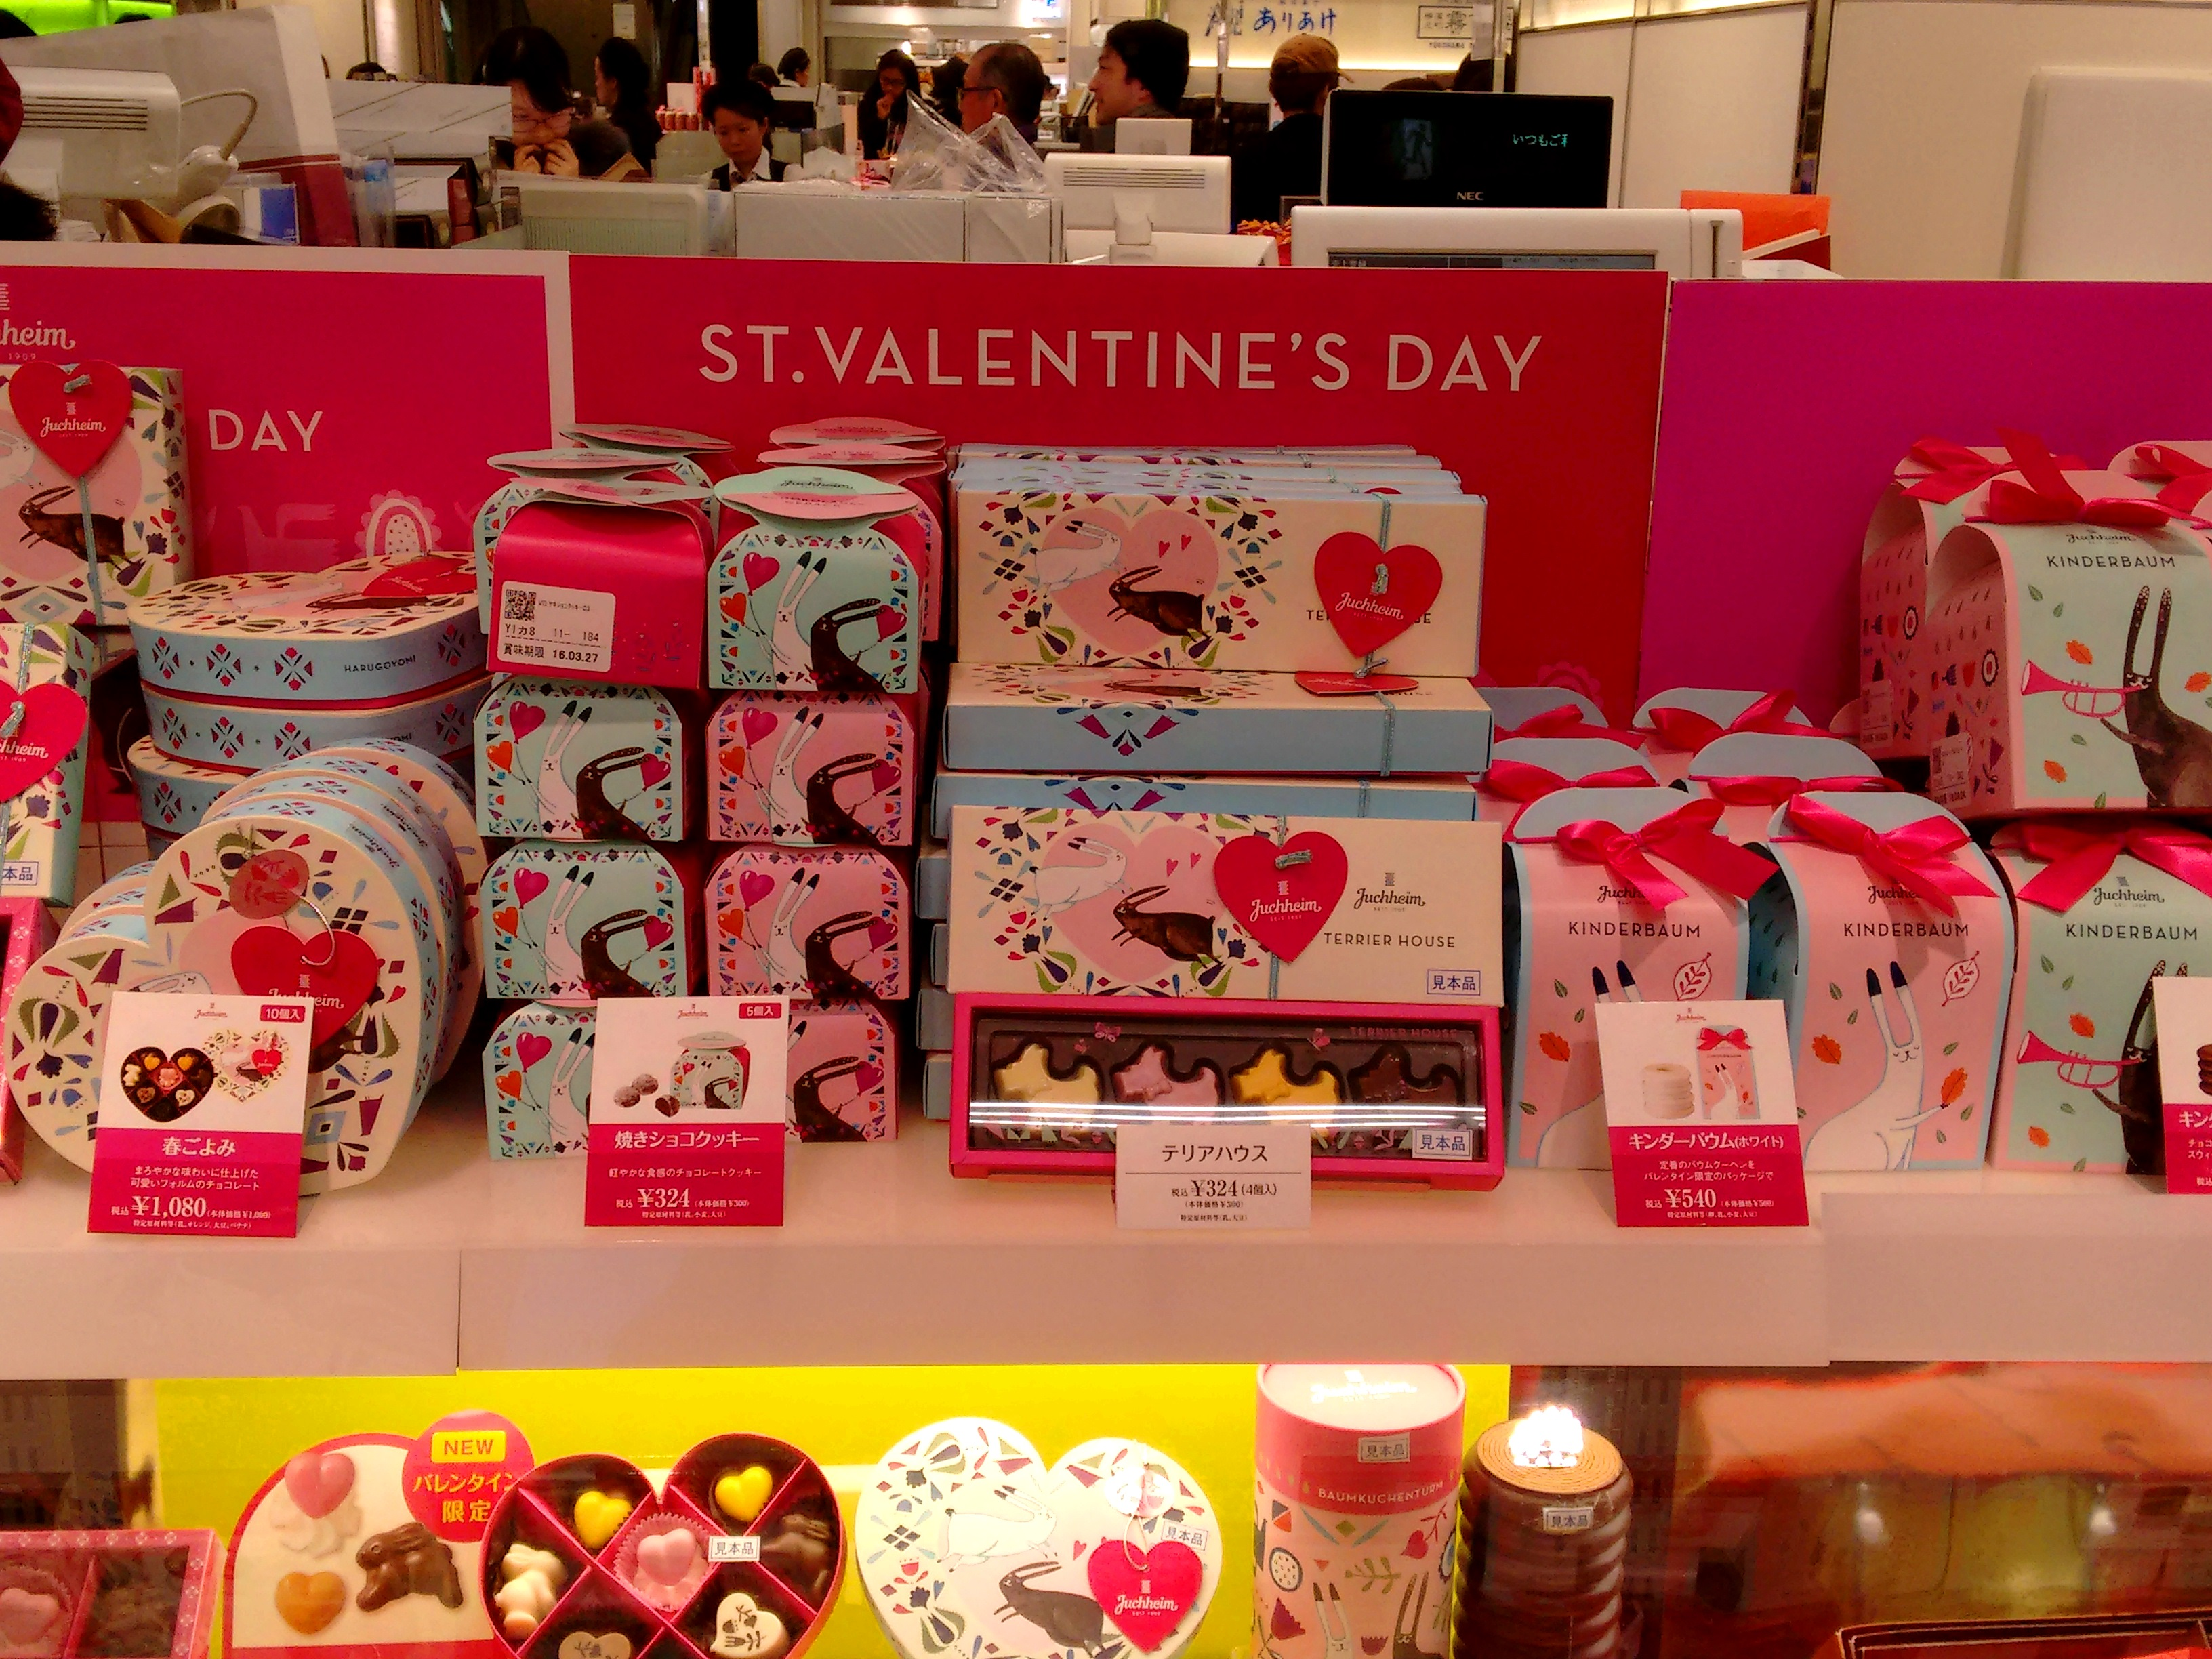 If You Happen To Be A New Foreign Guy In A Japanese Office, Do Not Get Too  Excited When Numerous Ladies Will Be Bringing You Chocolate On St.  Valentineu0027s ...